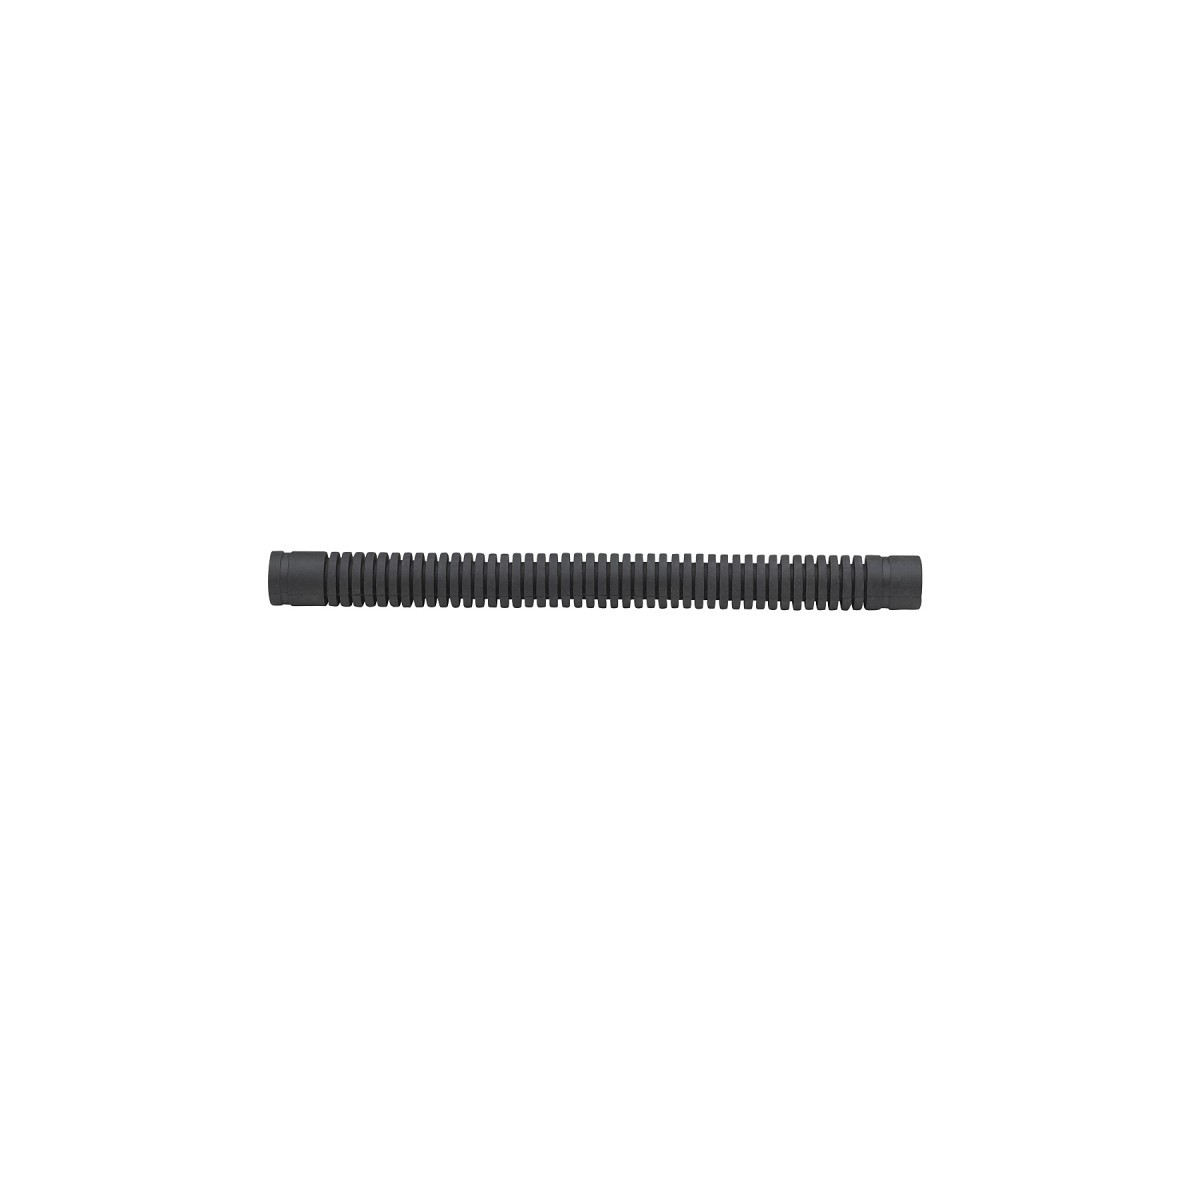 "Hollis Corrugated Adapter Hose 16"", Air 2 (1"" X 1/2"" Hose)"